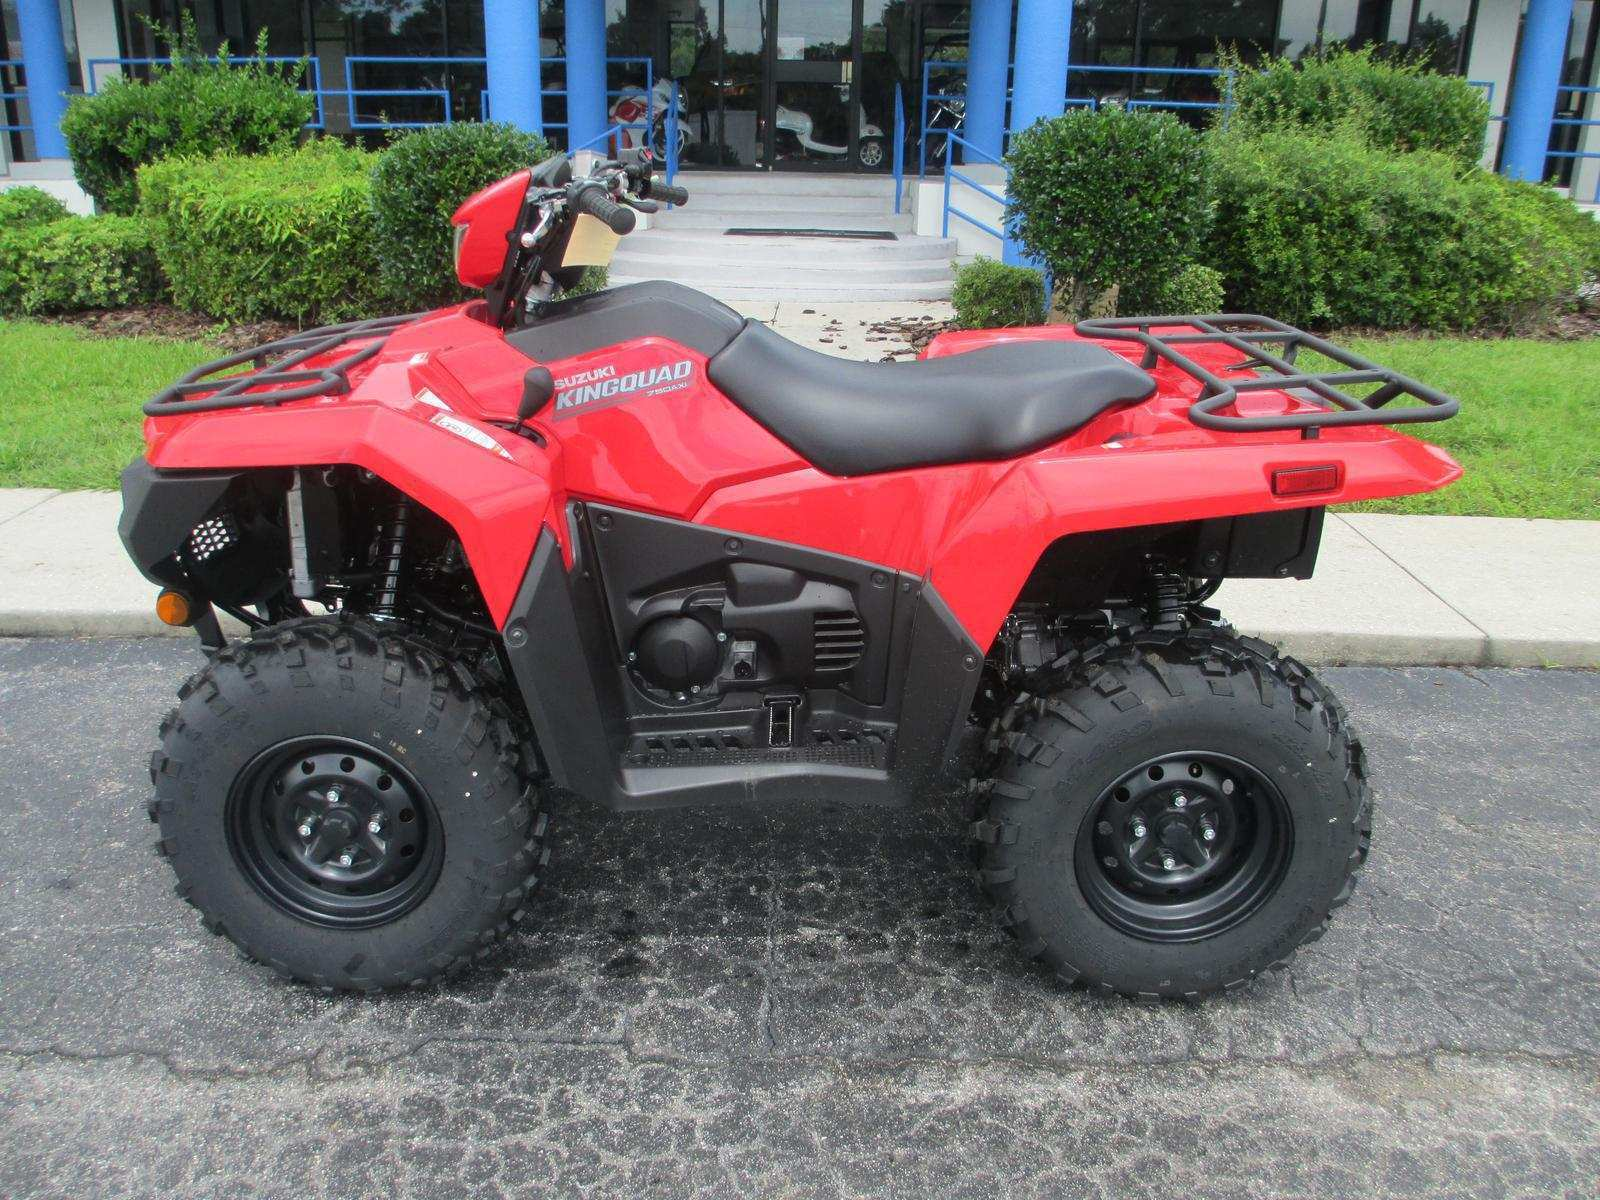 47 All New 2019 Suzuki 750 King Quad Exterior and Interior with 2019 Suzuki 750 King Quad